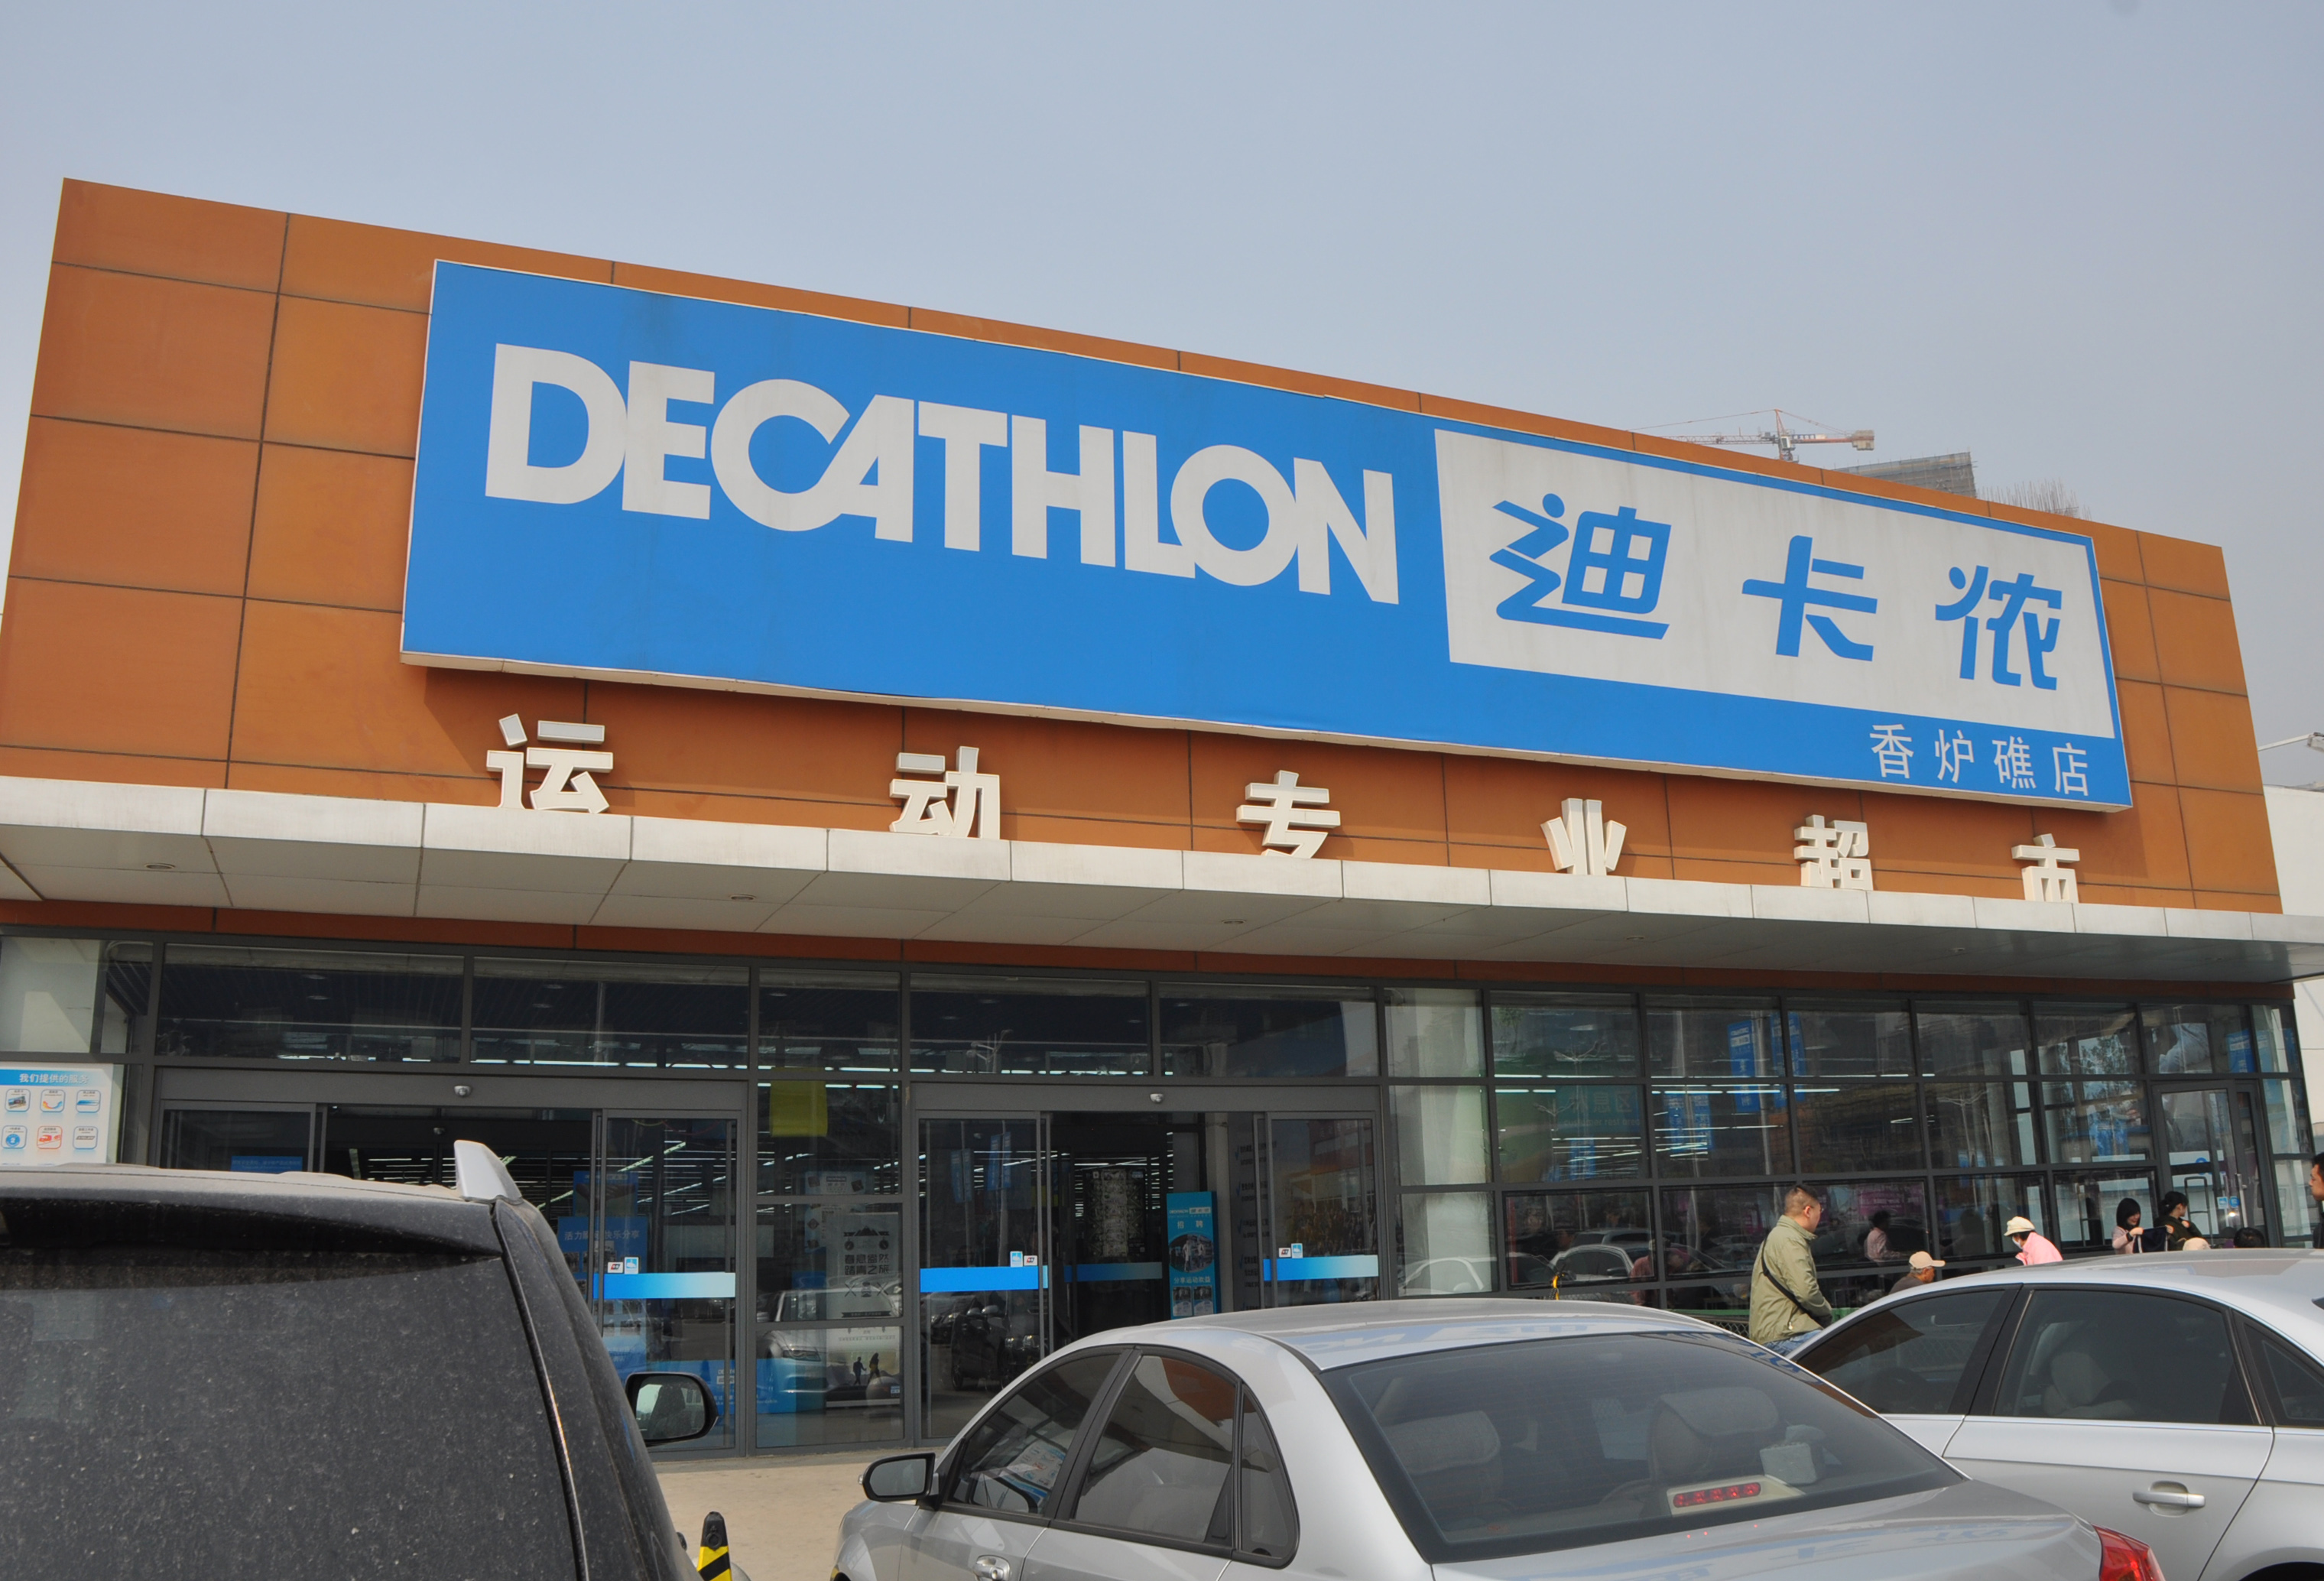 decathlon shoes DriverLayer Search Engine